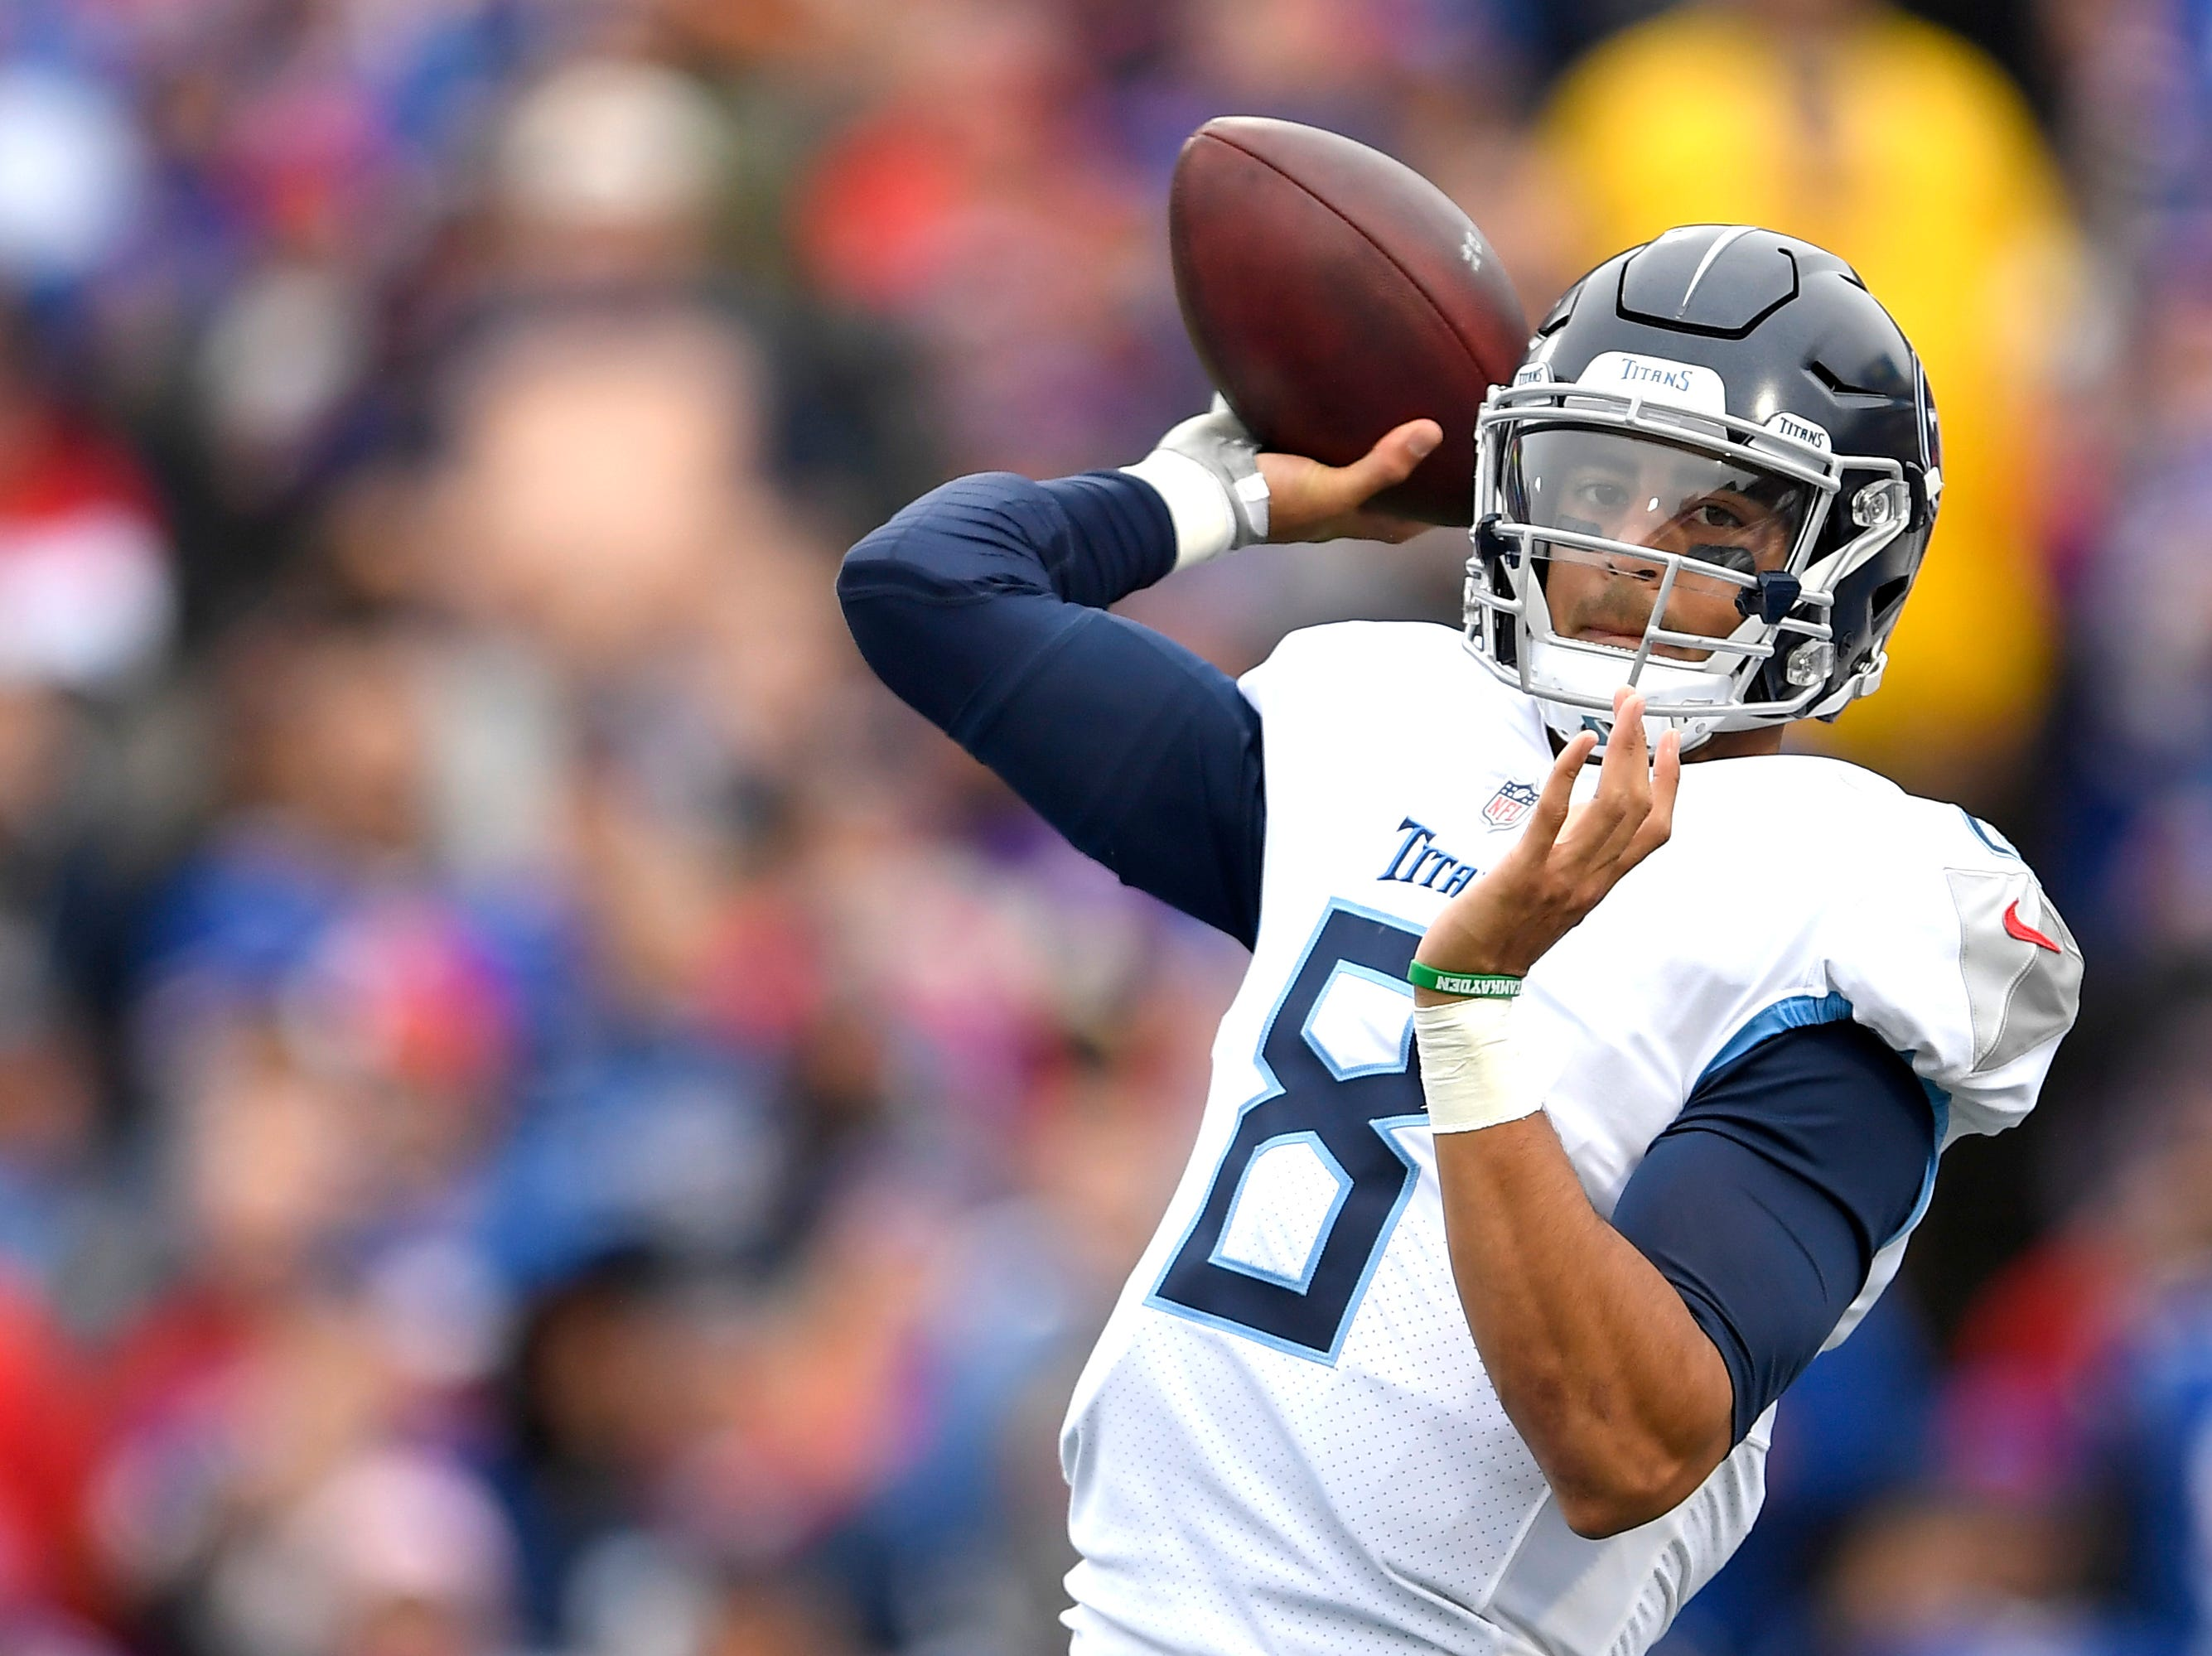 Tennessee Titans quarterback Marcus Mariota throws a pass against the Buffalo Bills during the second half of an NFL football game, Sunday, Oct. 7, 2018, in Orchard Park, N.Y. (AP Photo/Adrian Kraus)